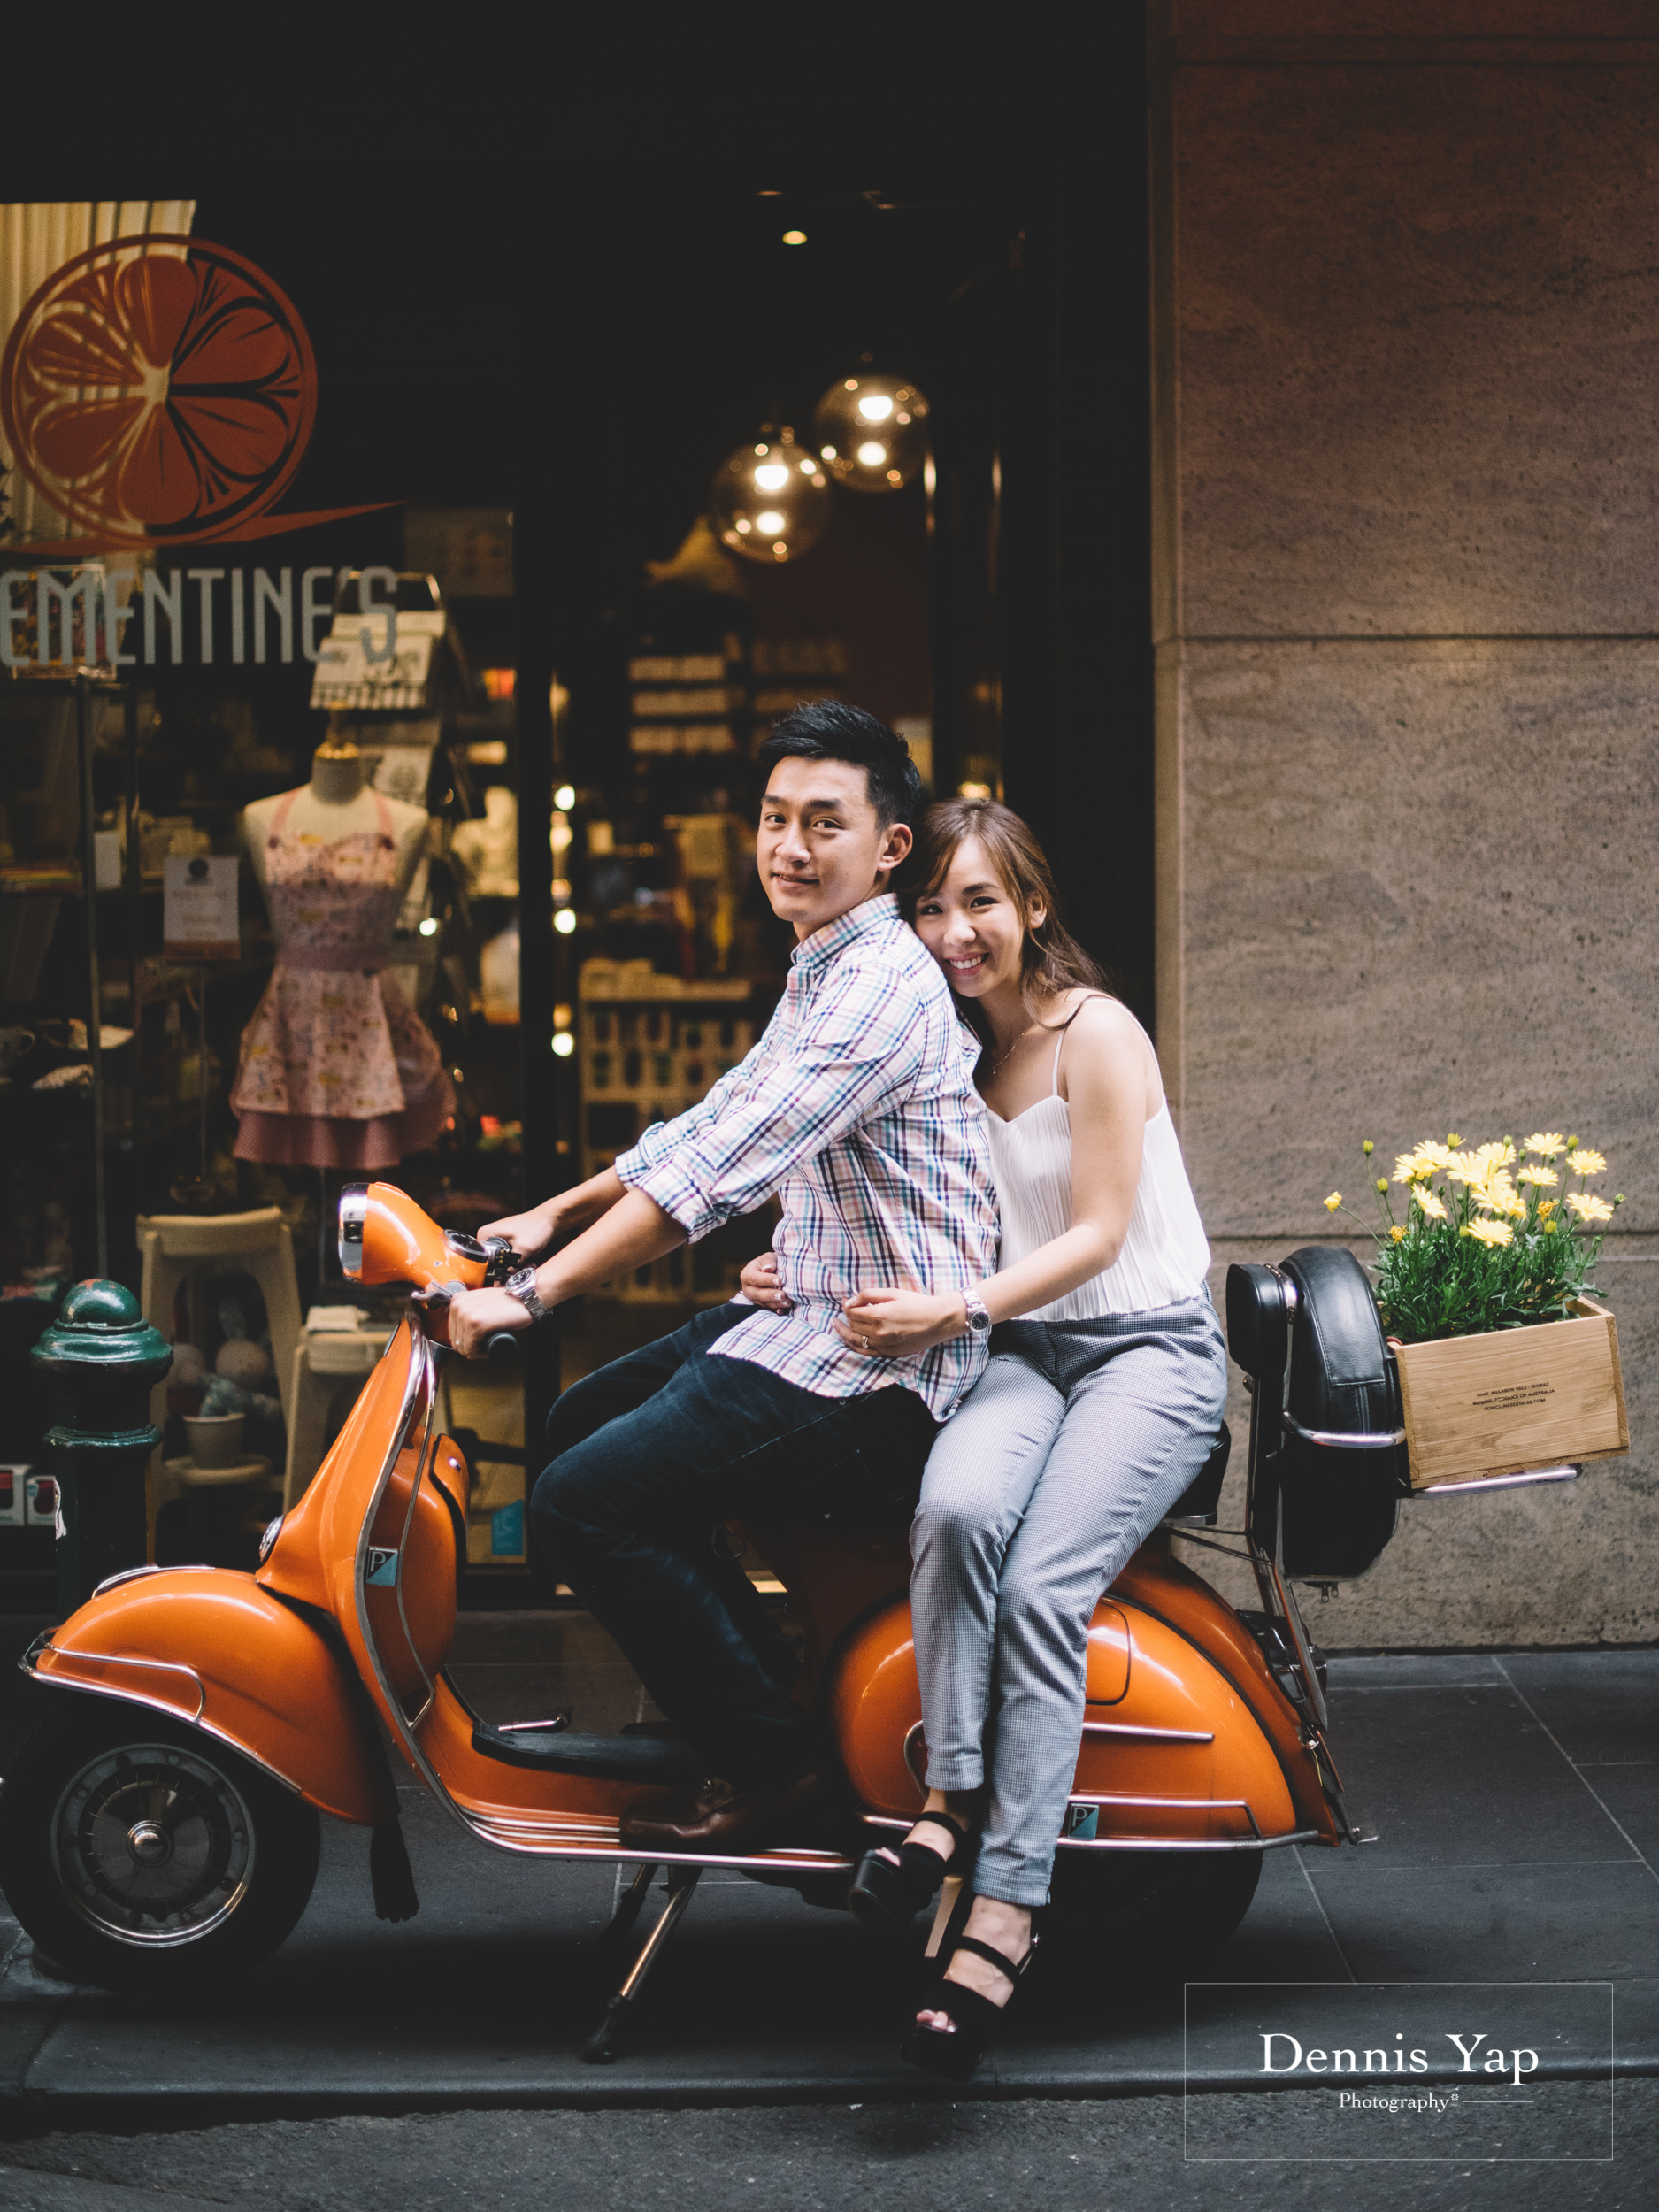 kok tee christine pre wedding melbourne dennis yap malaysia wedding photographer destination top 10-8.jpg